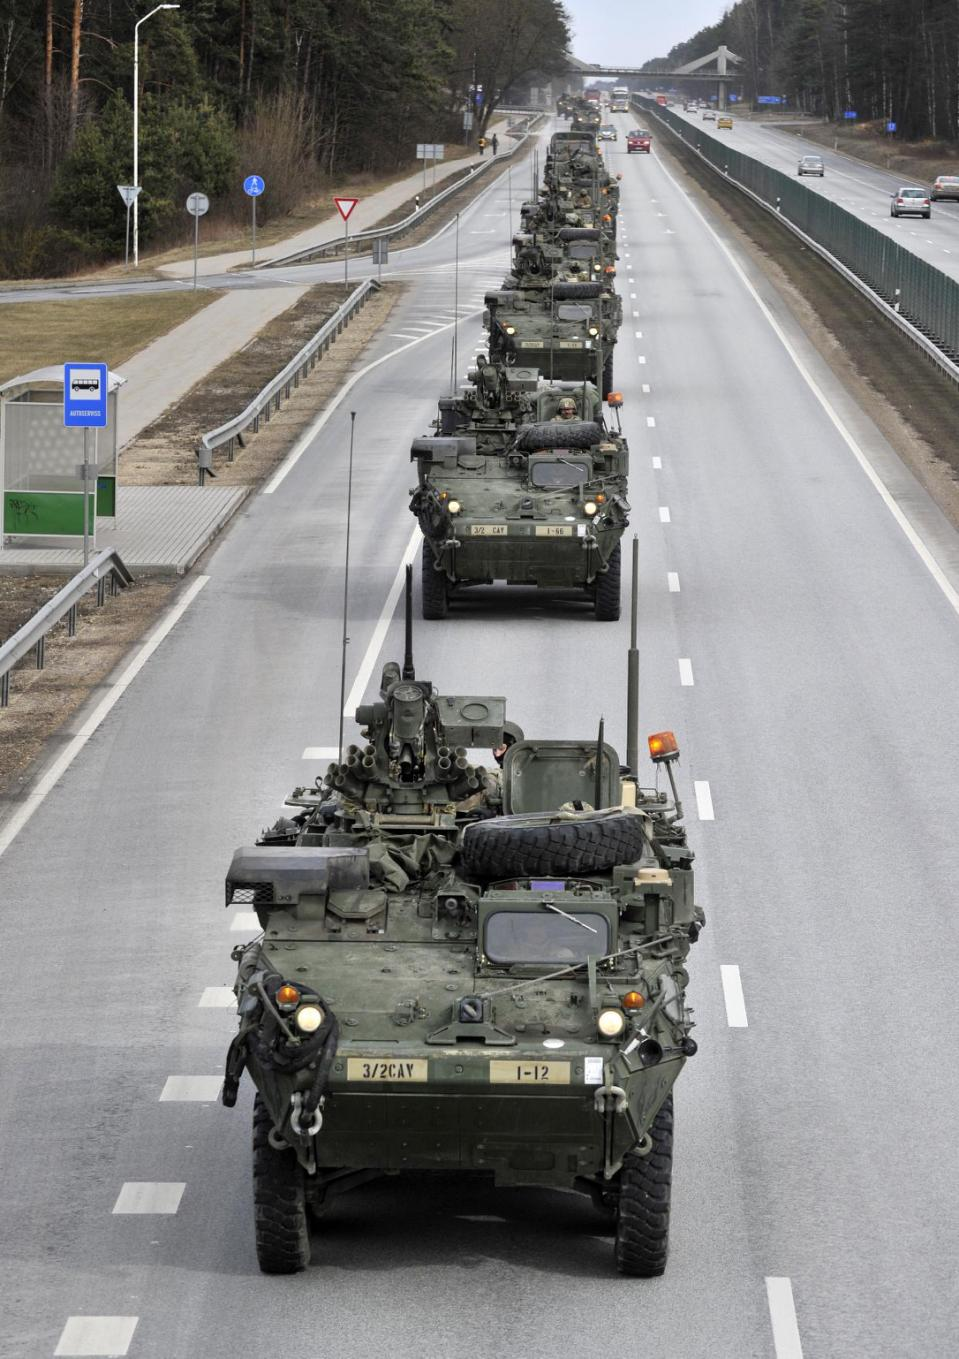 us-army-dragoon-ride-riga-22-march-2015